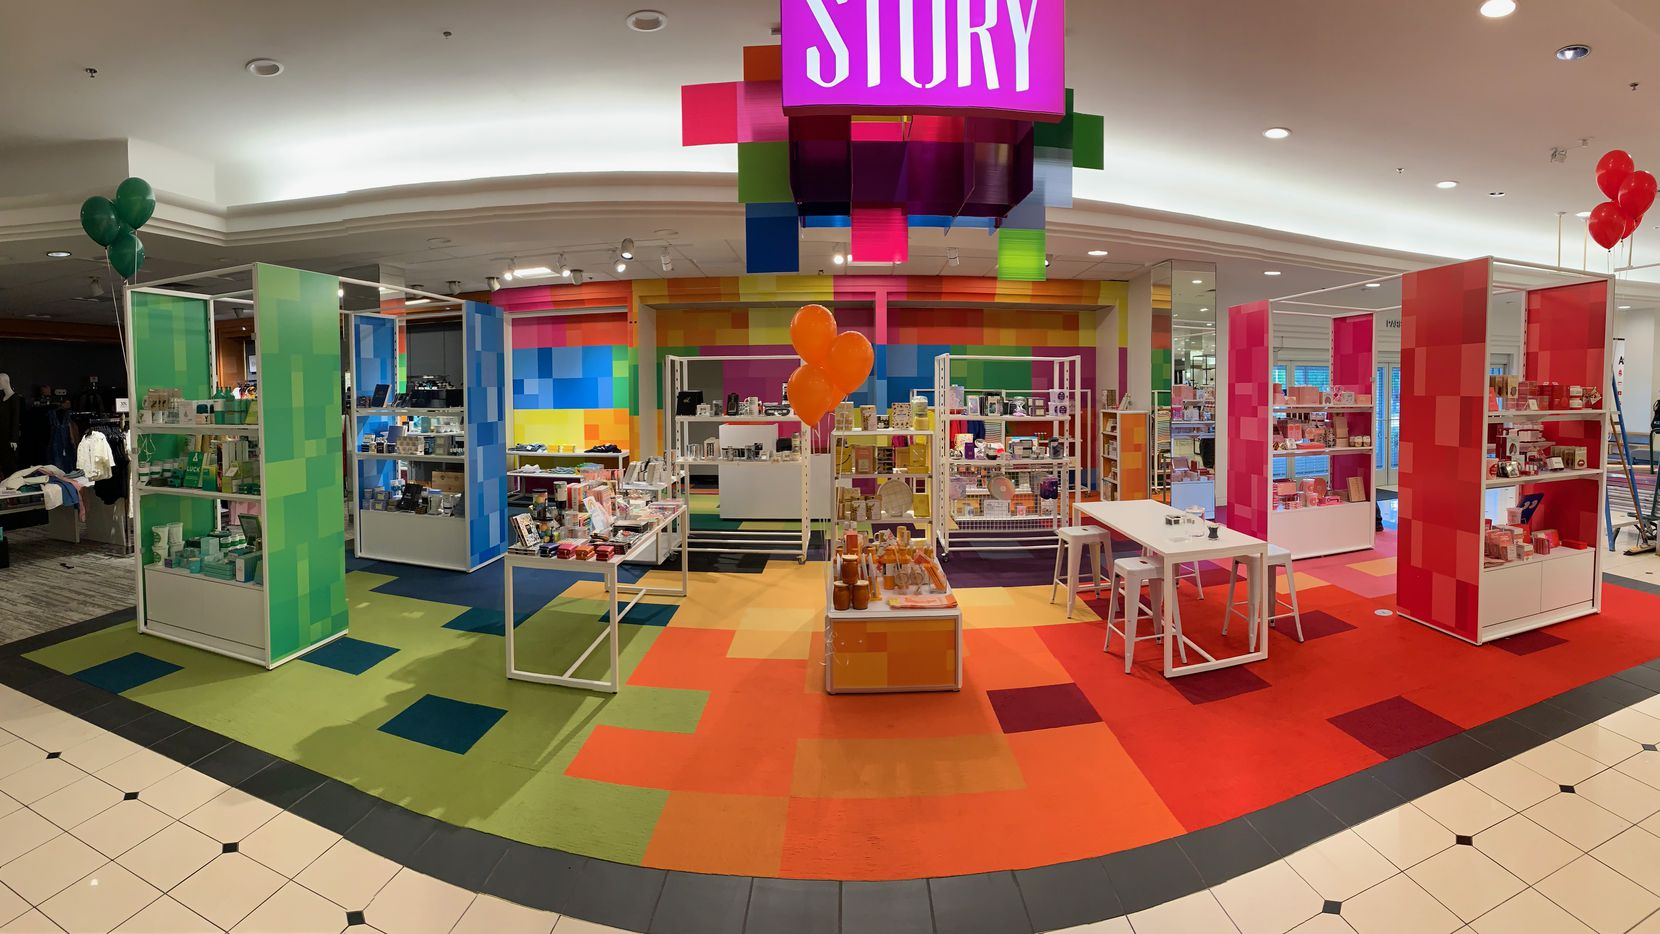 Story shop inside the Macy's at NorthPark Center. It's located on the first level at the entrance from Park Lane in Dallas.